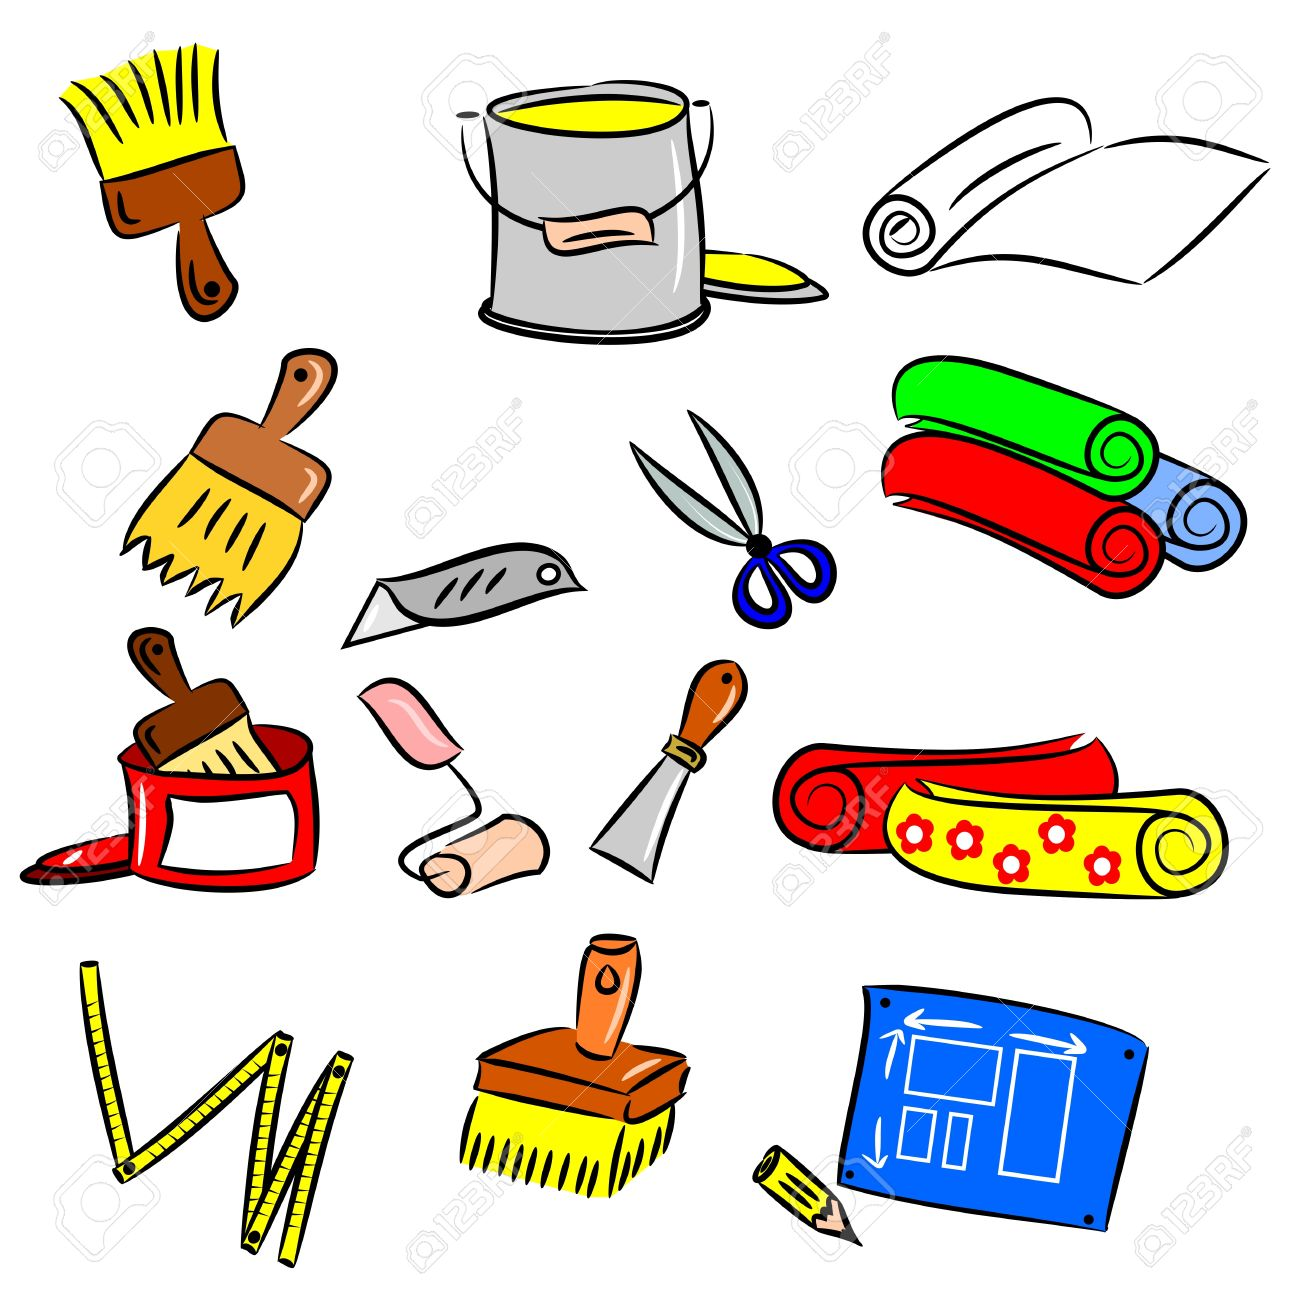 cartoon drawings of diy tools for decorating and renovating stock vector 15875326